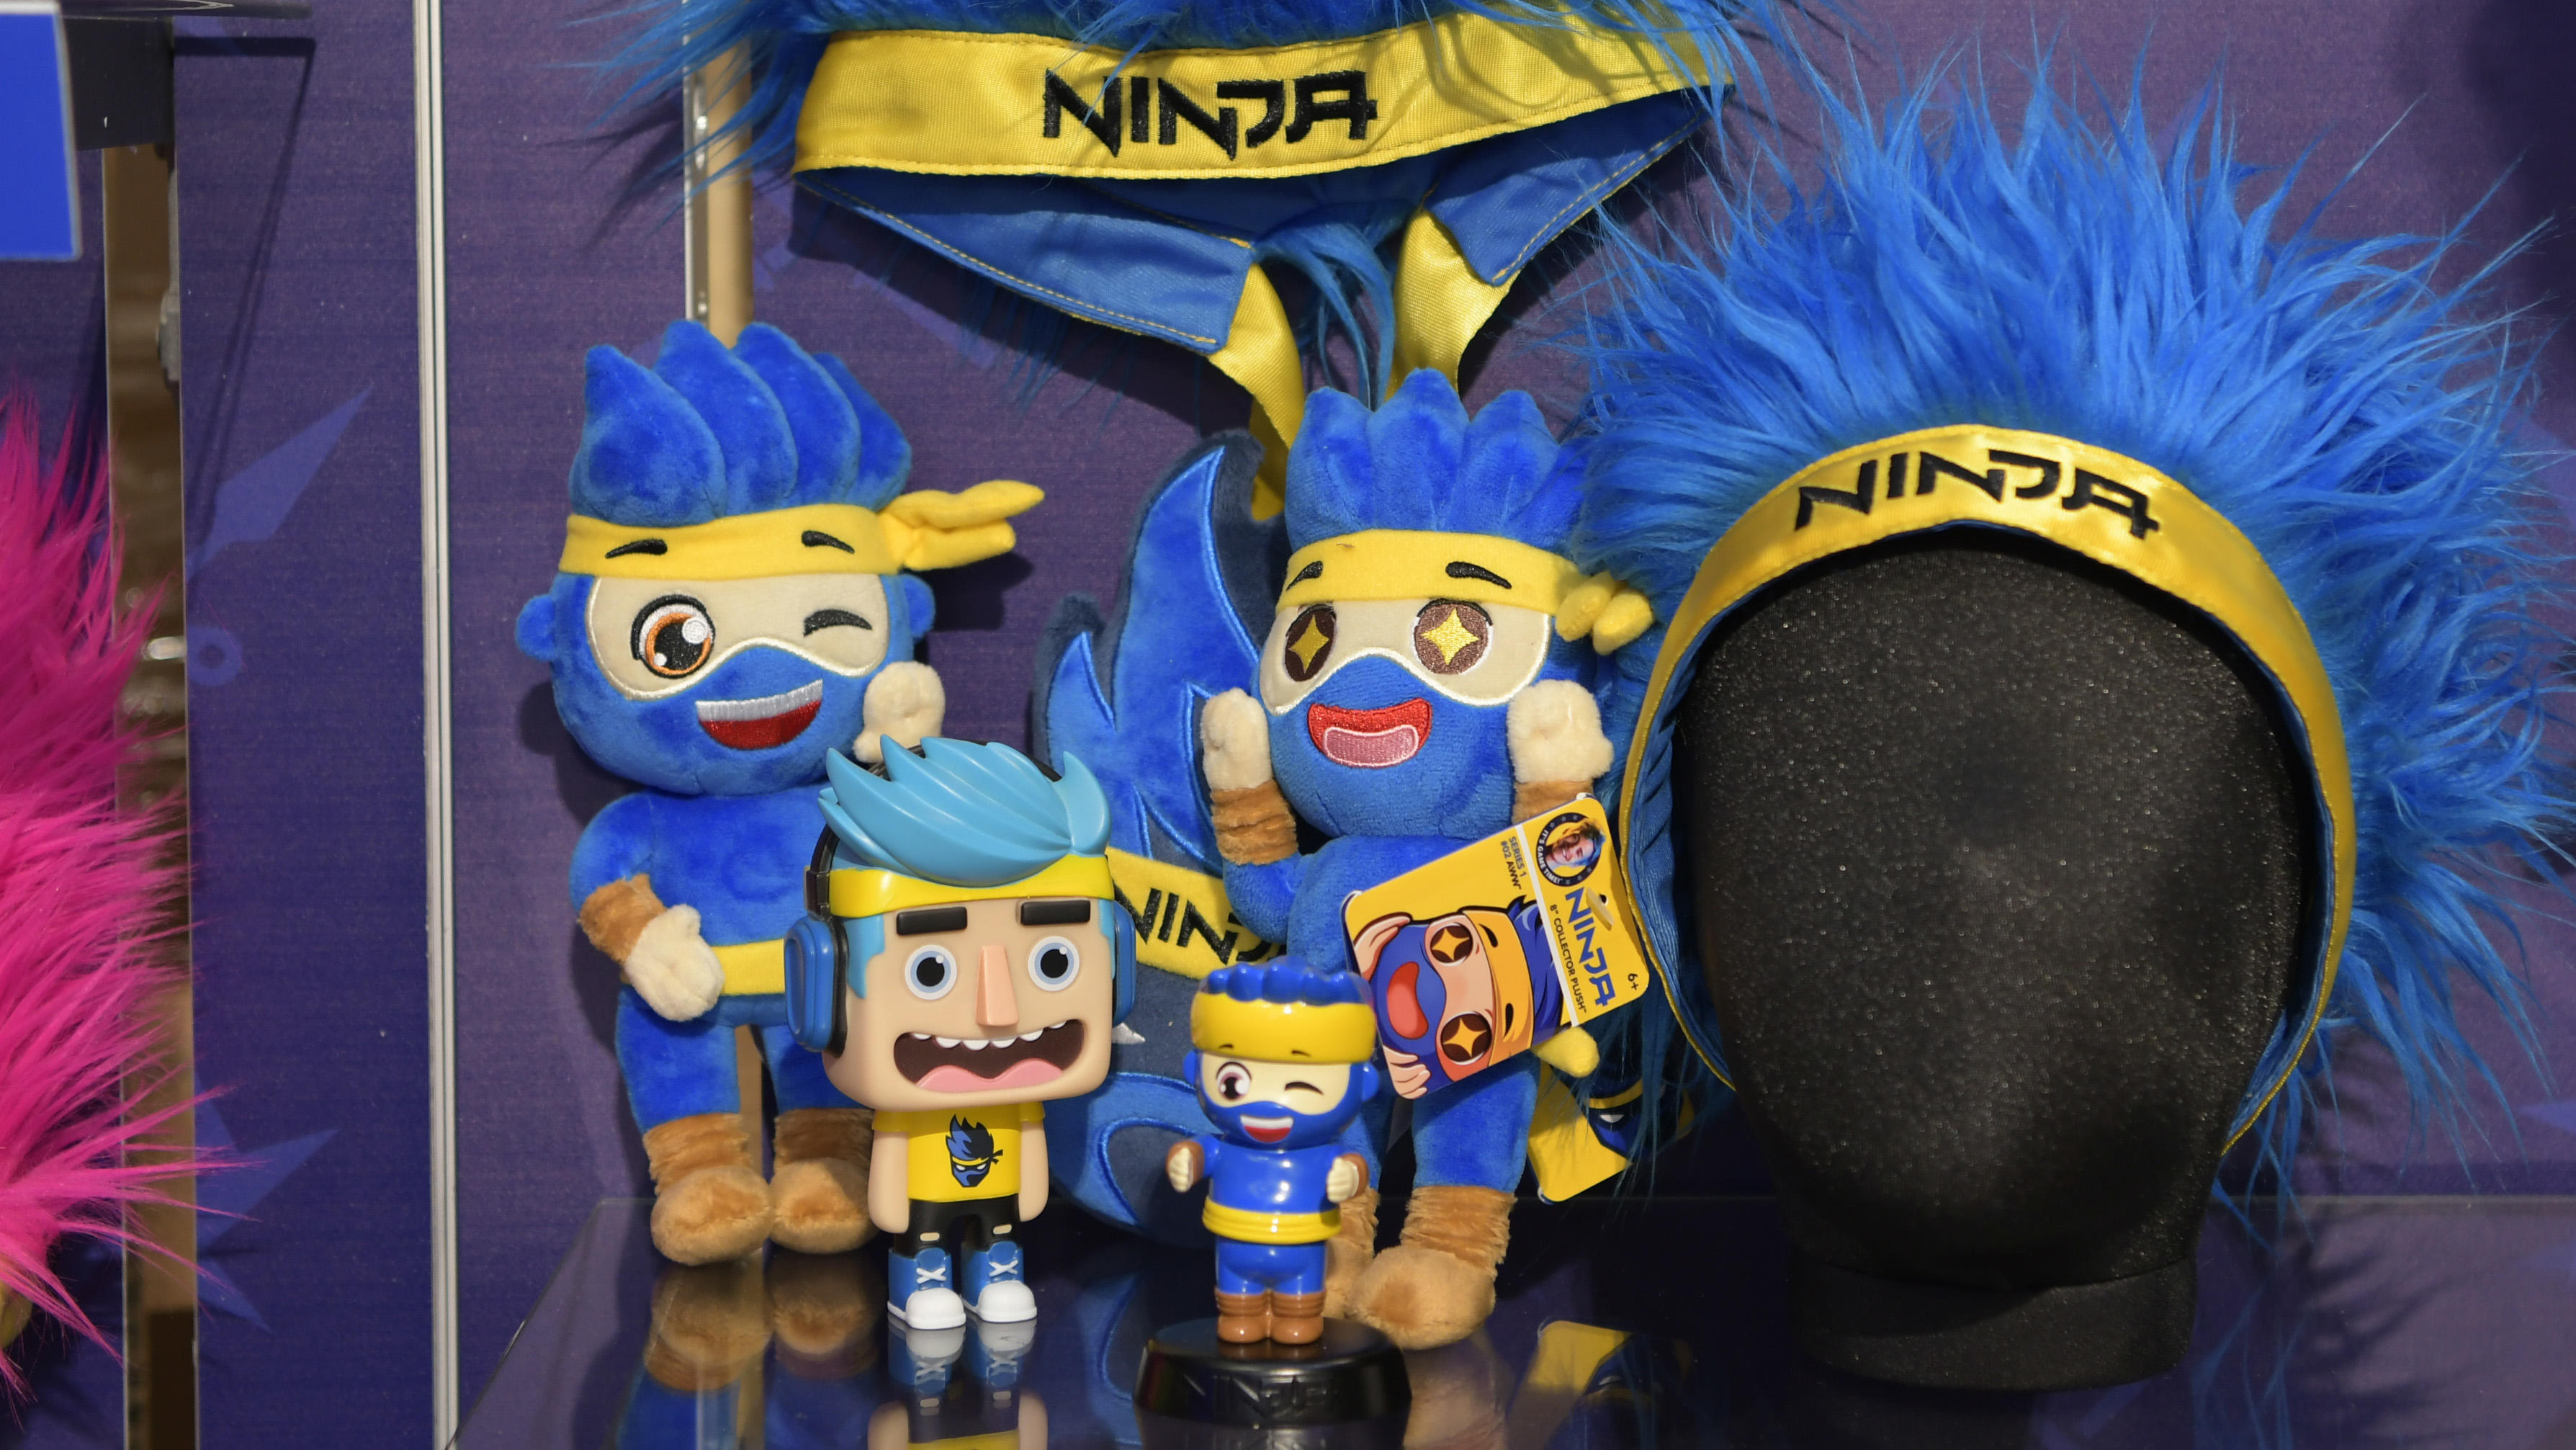 ninja-twitch-toys-ny-toy-fair-2019-007